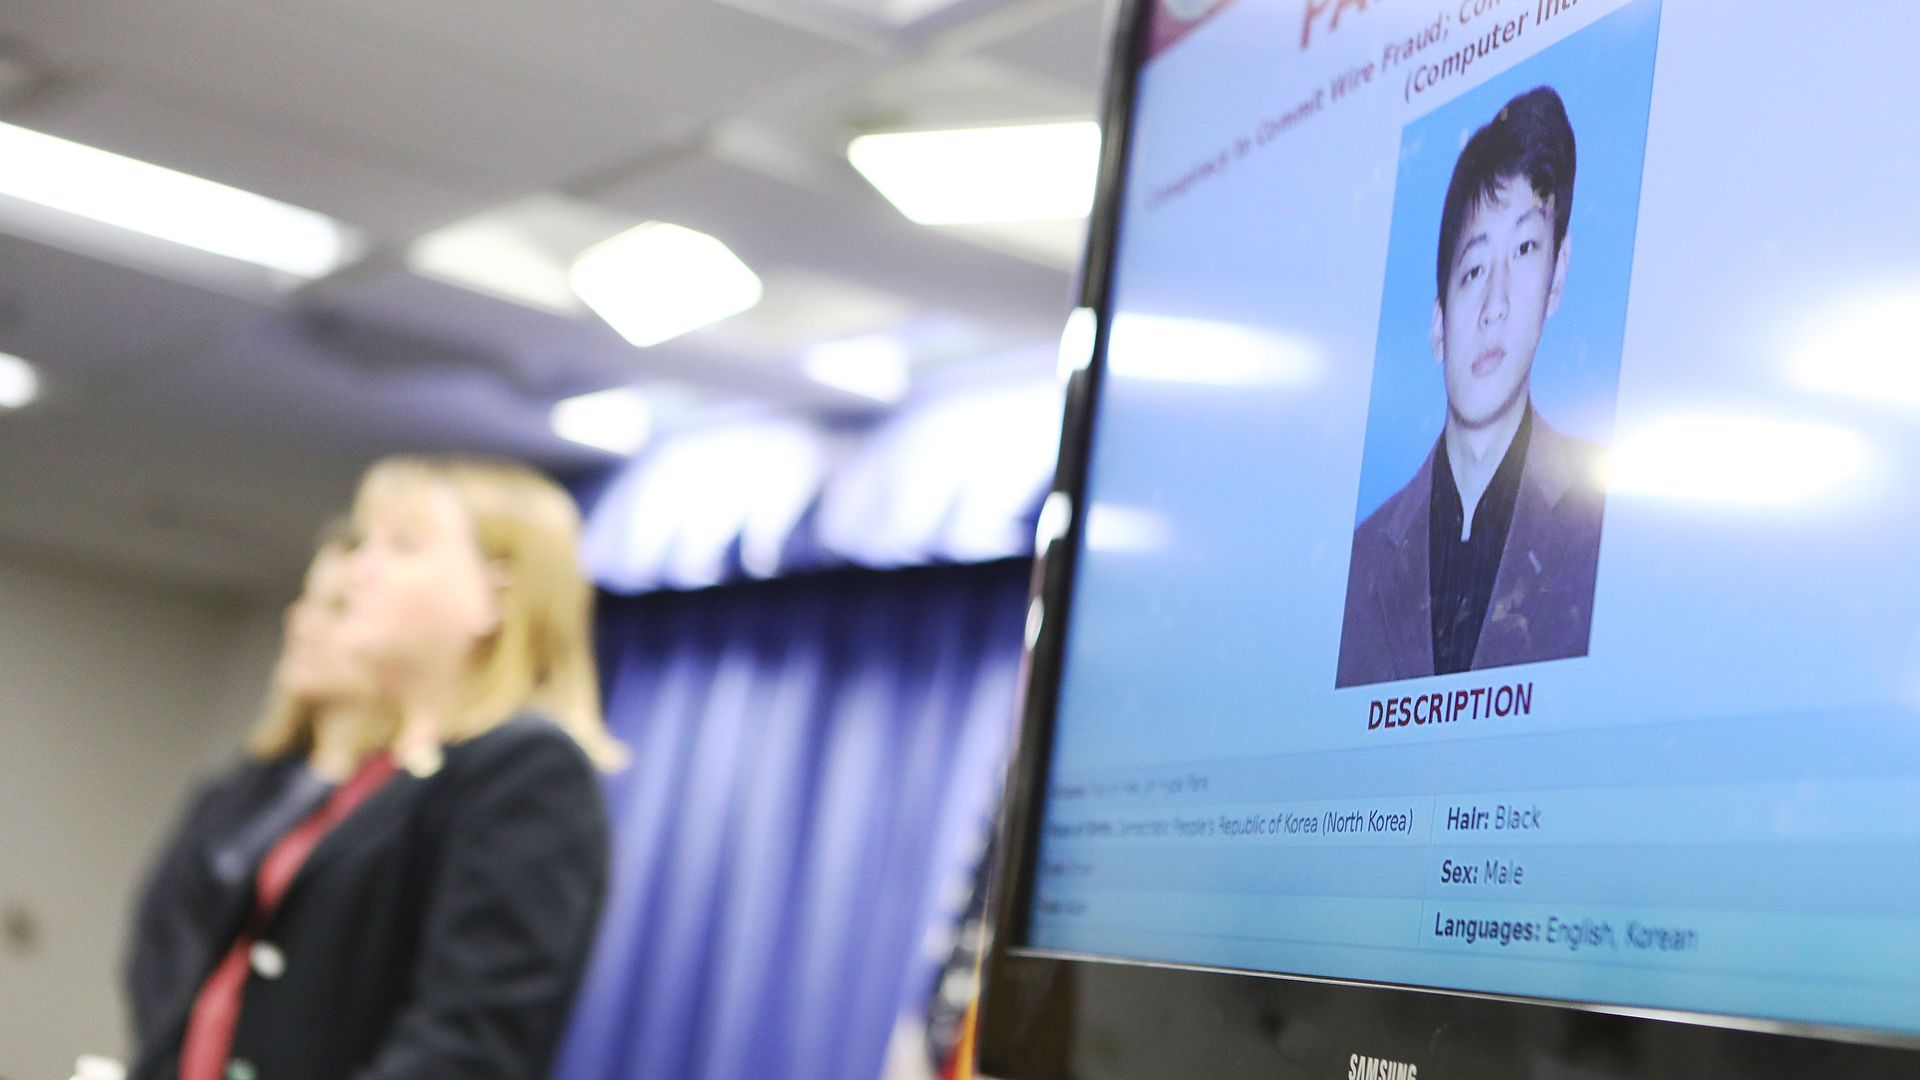 Justice Department officials in the background of a monitor displaying a North Korean man.